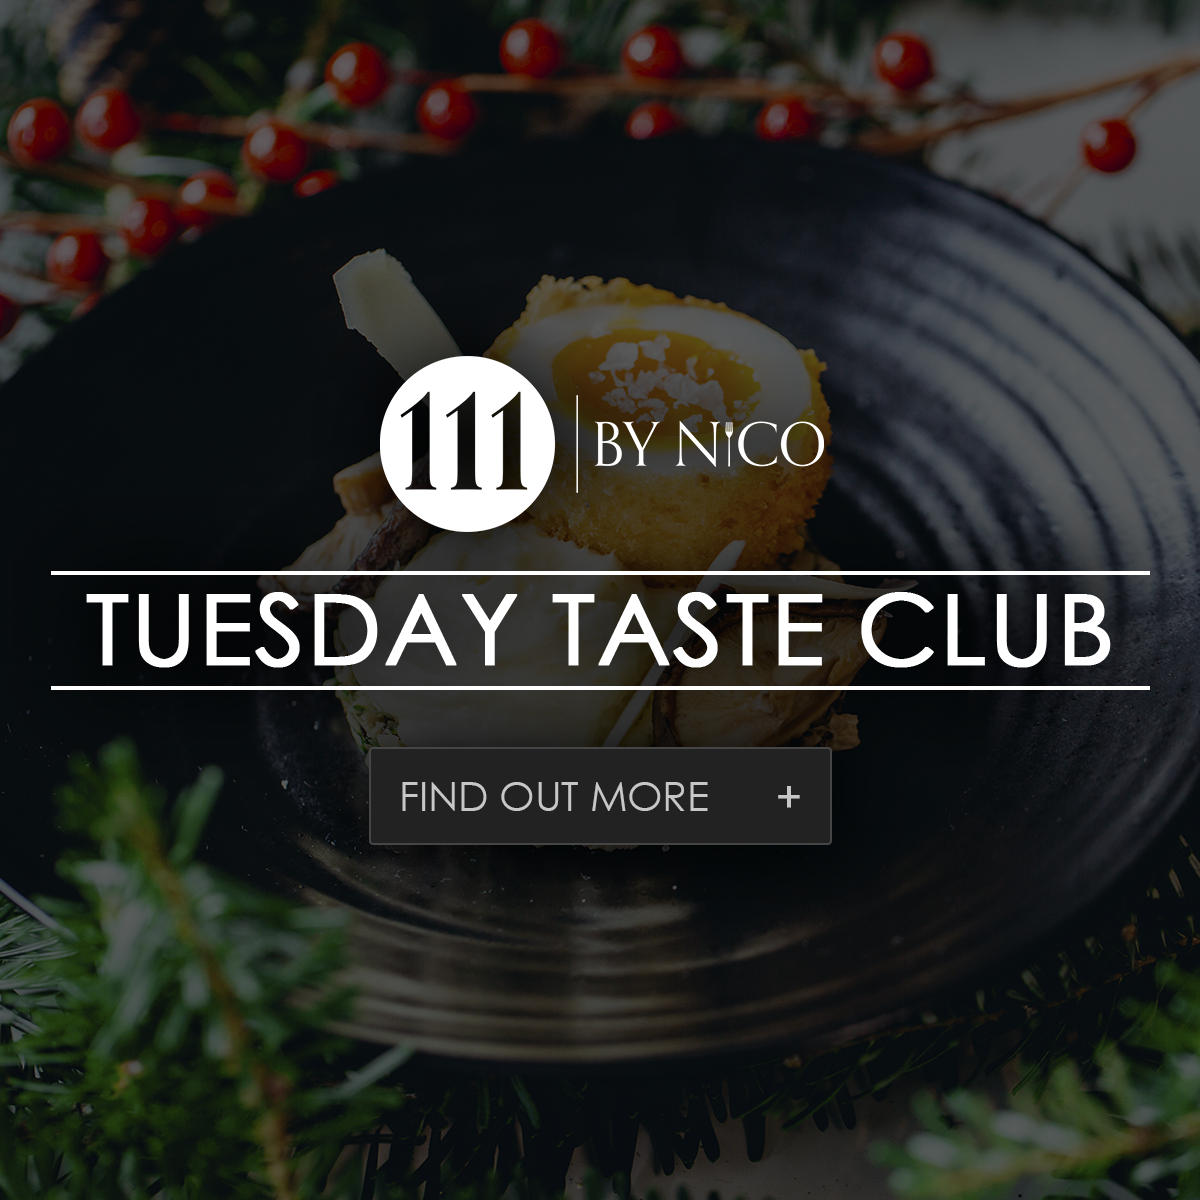 tuesday taste club at 111 by nicos